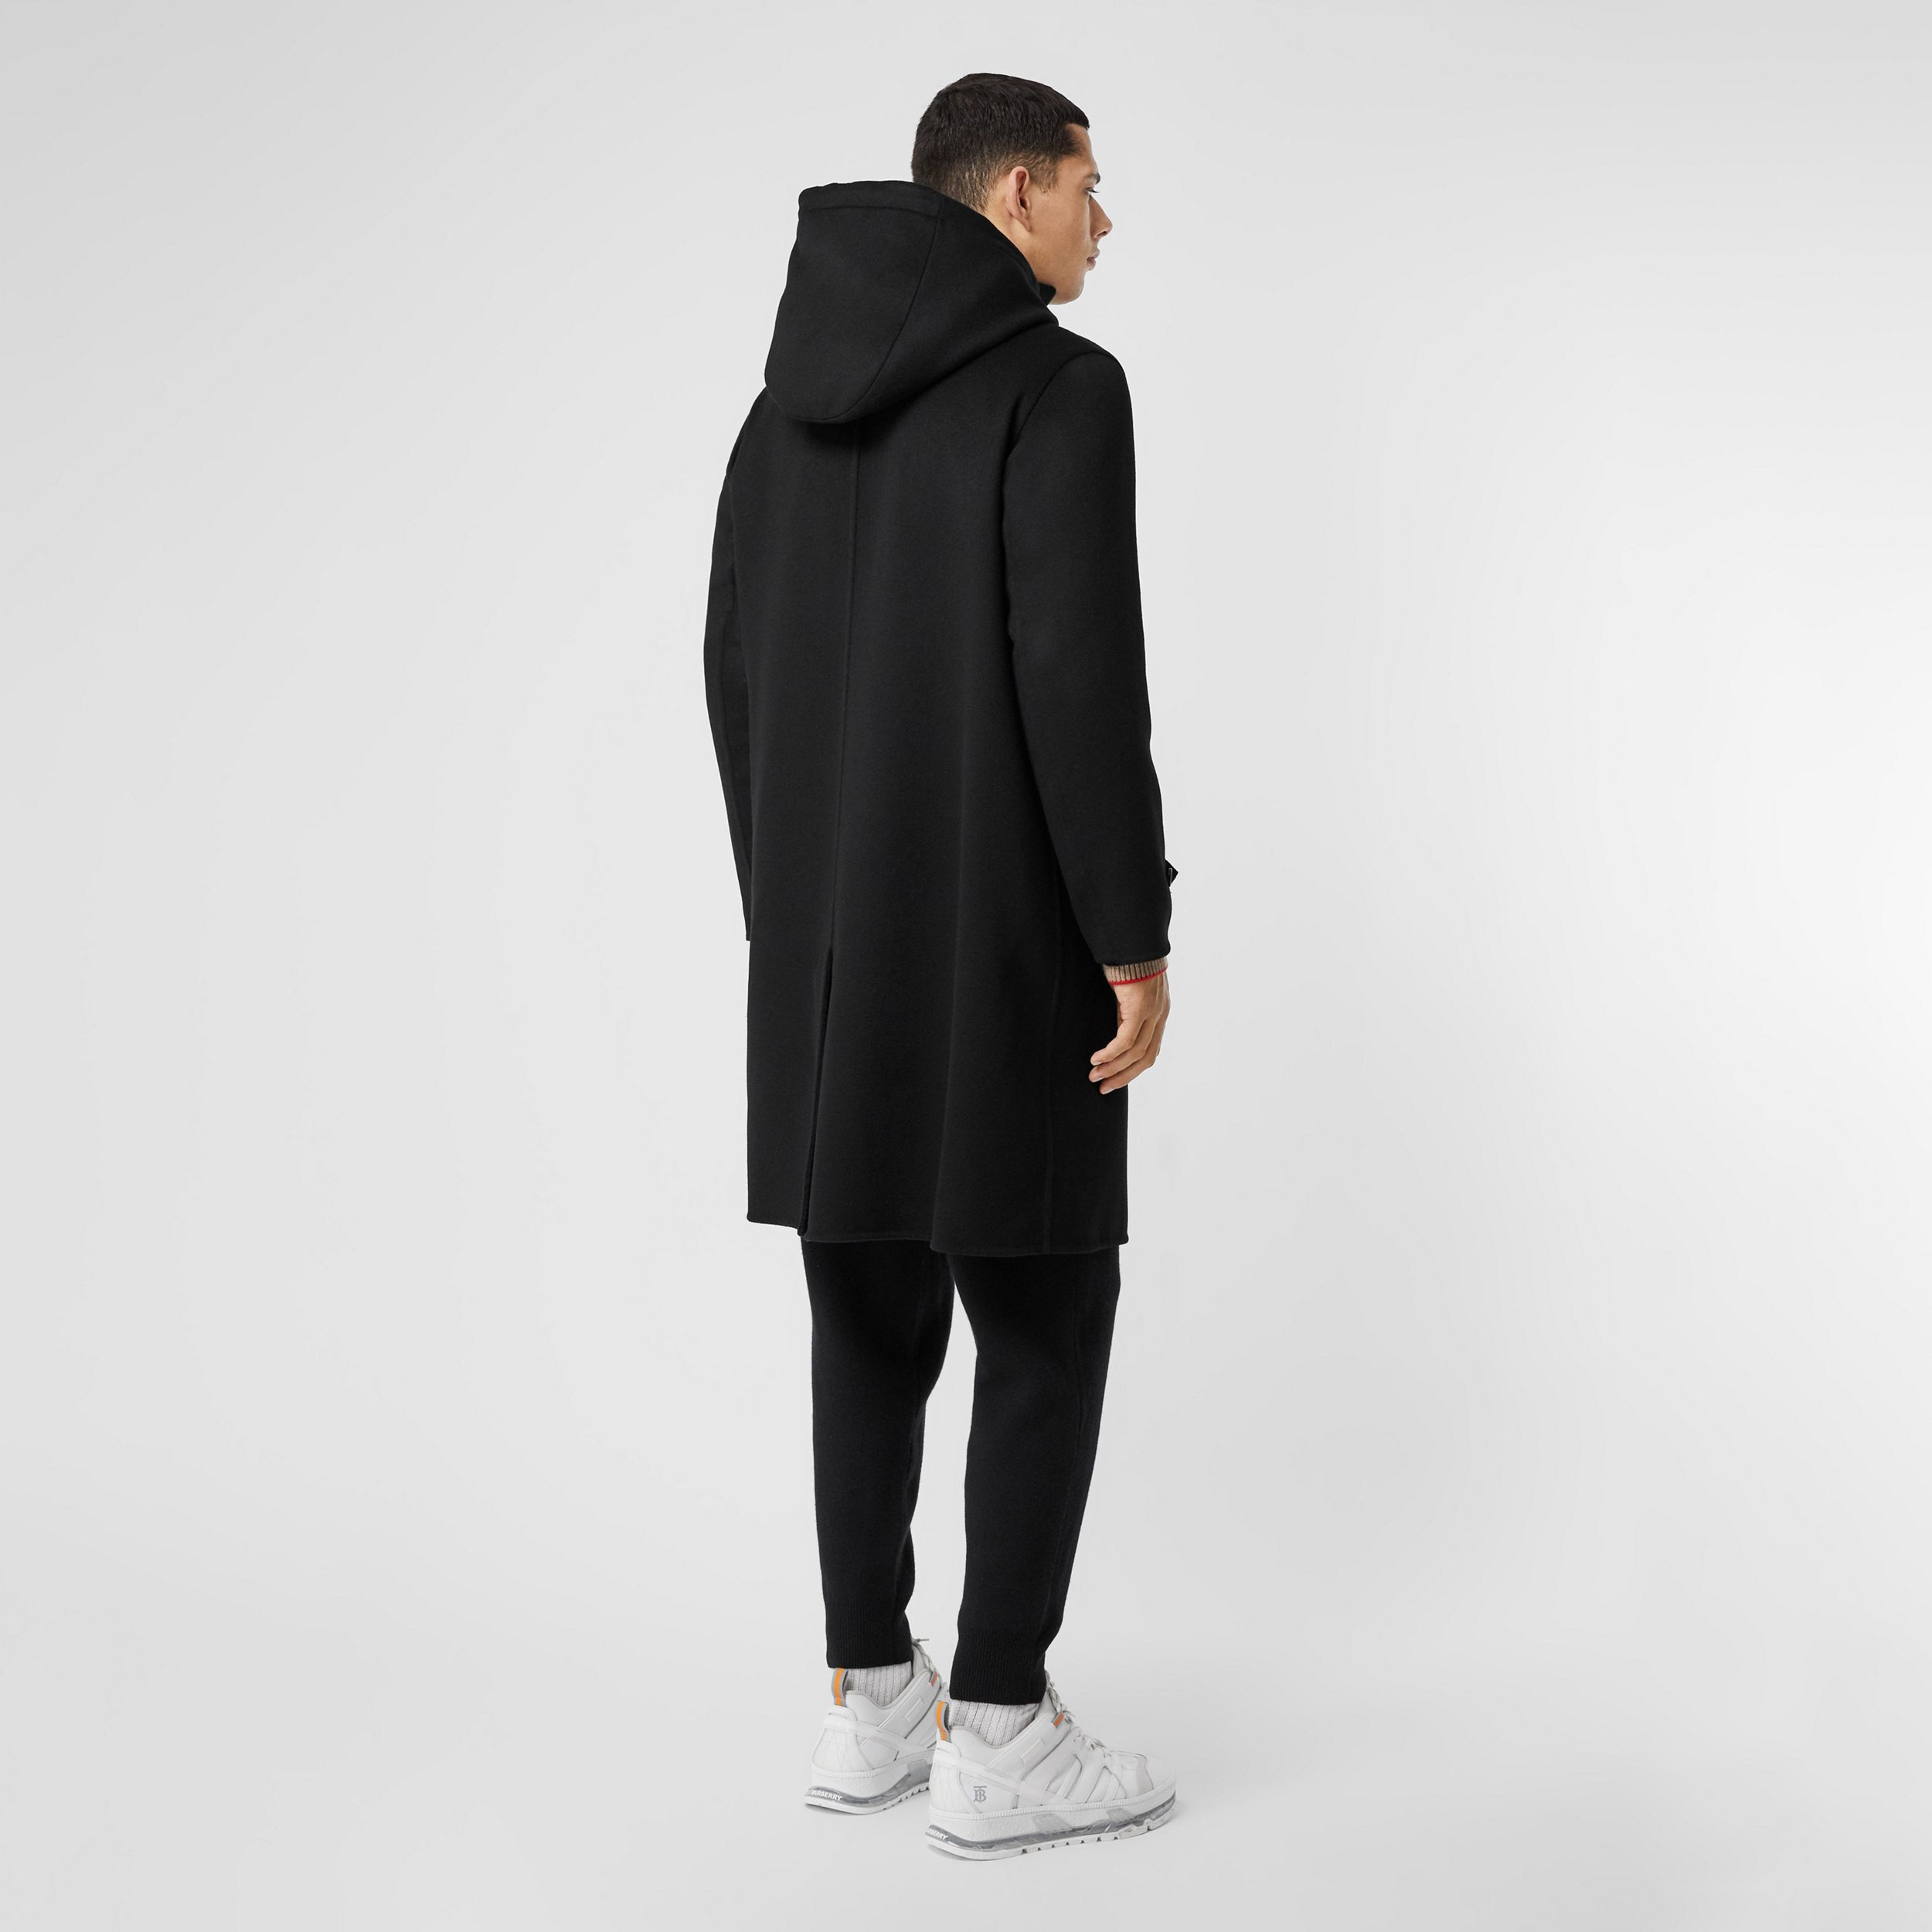 Double-faced Cashmere Hooded Coat in Black - Men | Burberry - 3